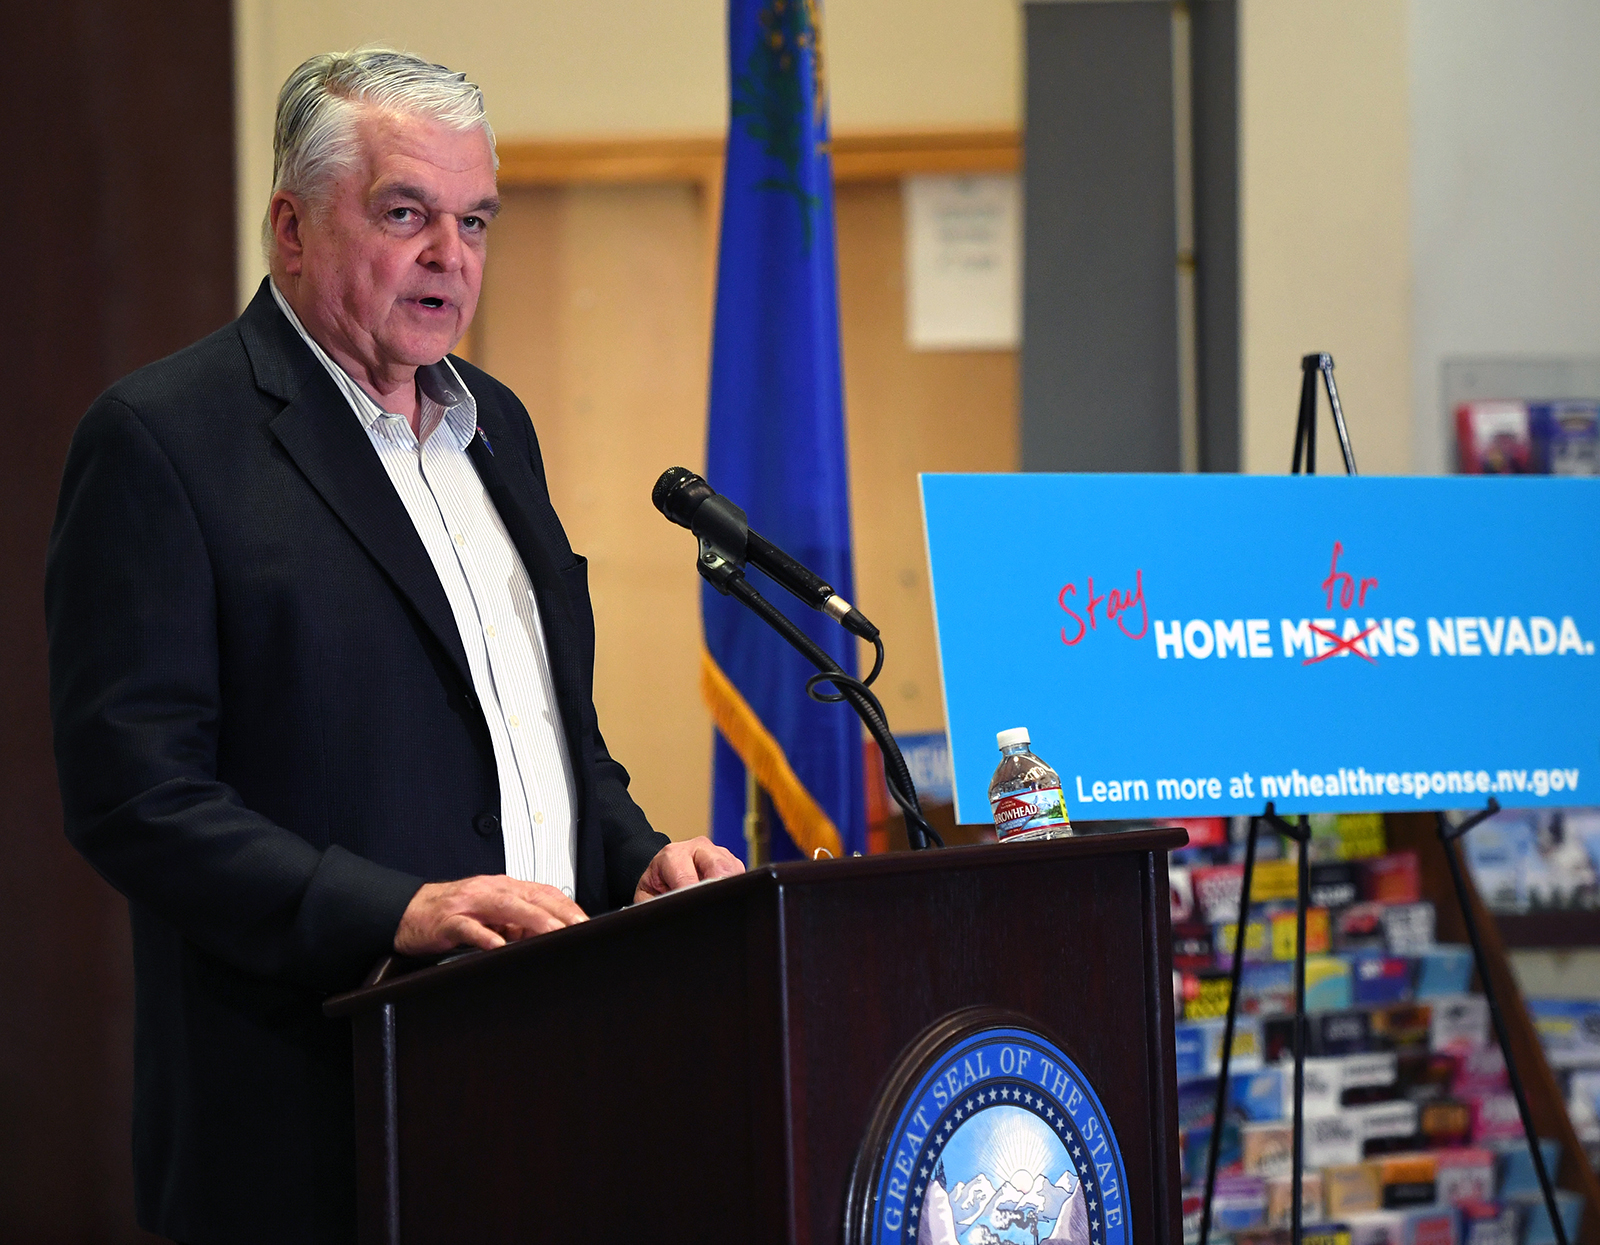 Nevada Gov. Steve Sisolak speaks during a news conference on the state's response to the coronavirus outbreak at the Grant Sawyer State Office Building in Las Vegas, on March 17.